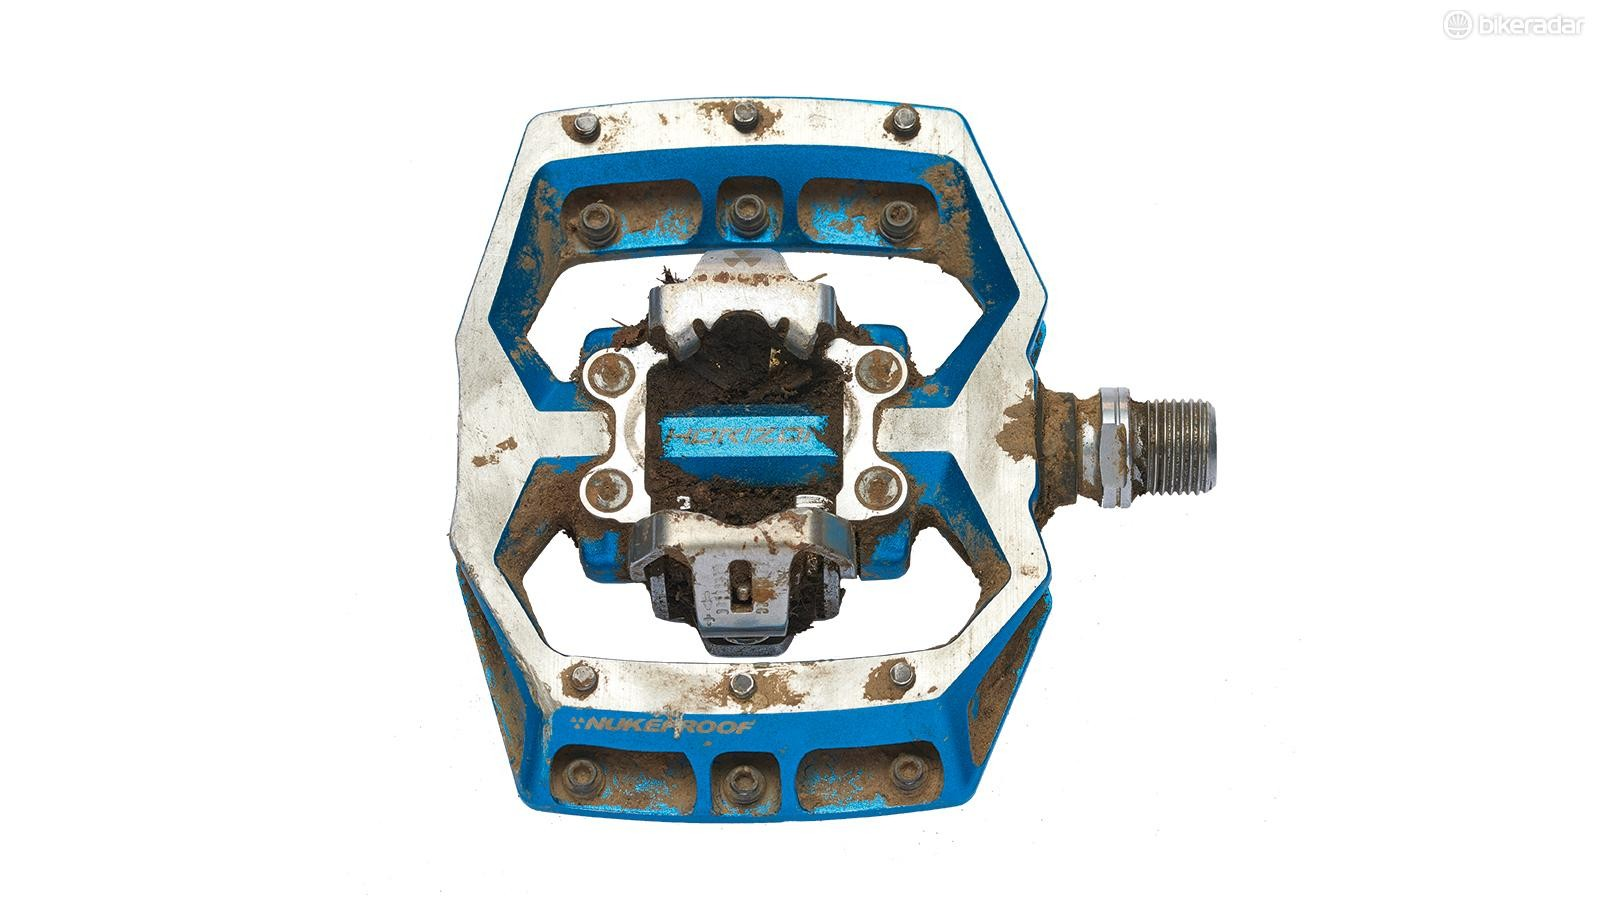 The Horizon CL pedal